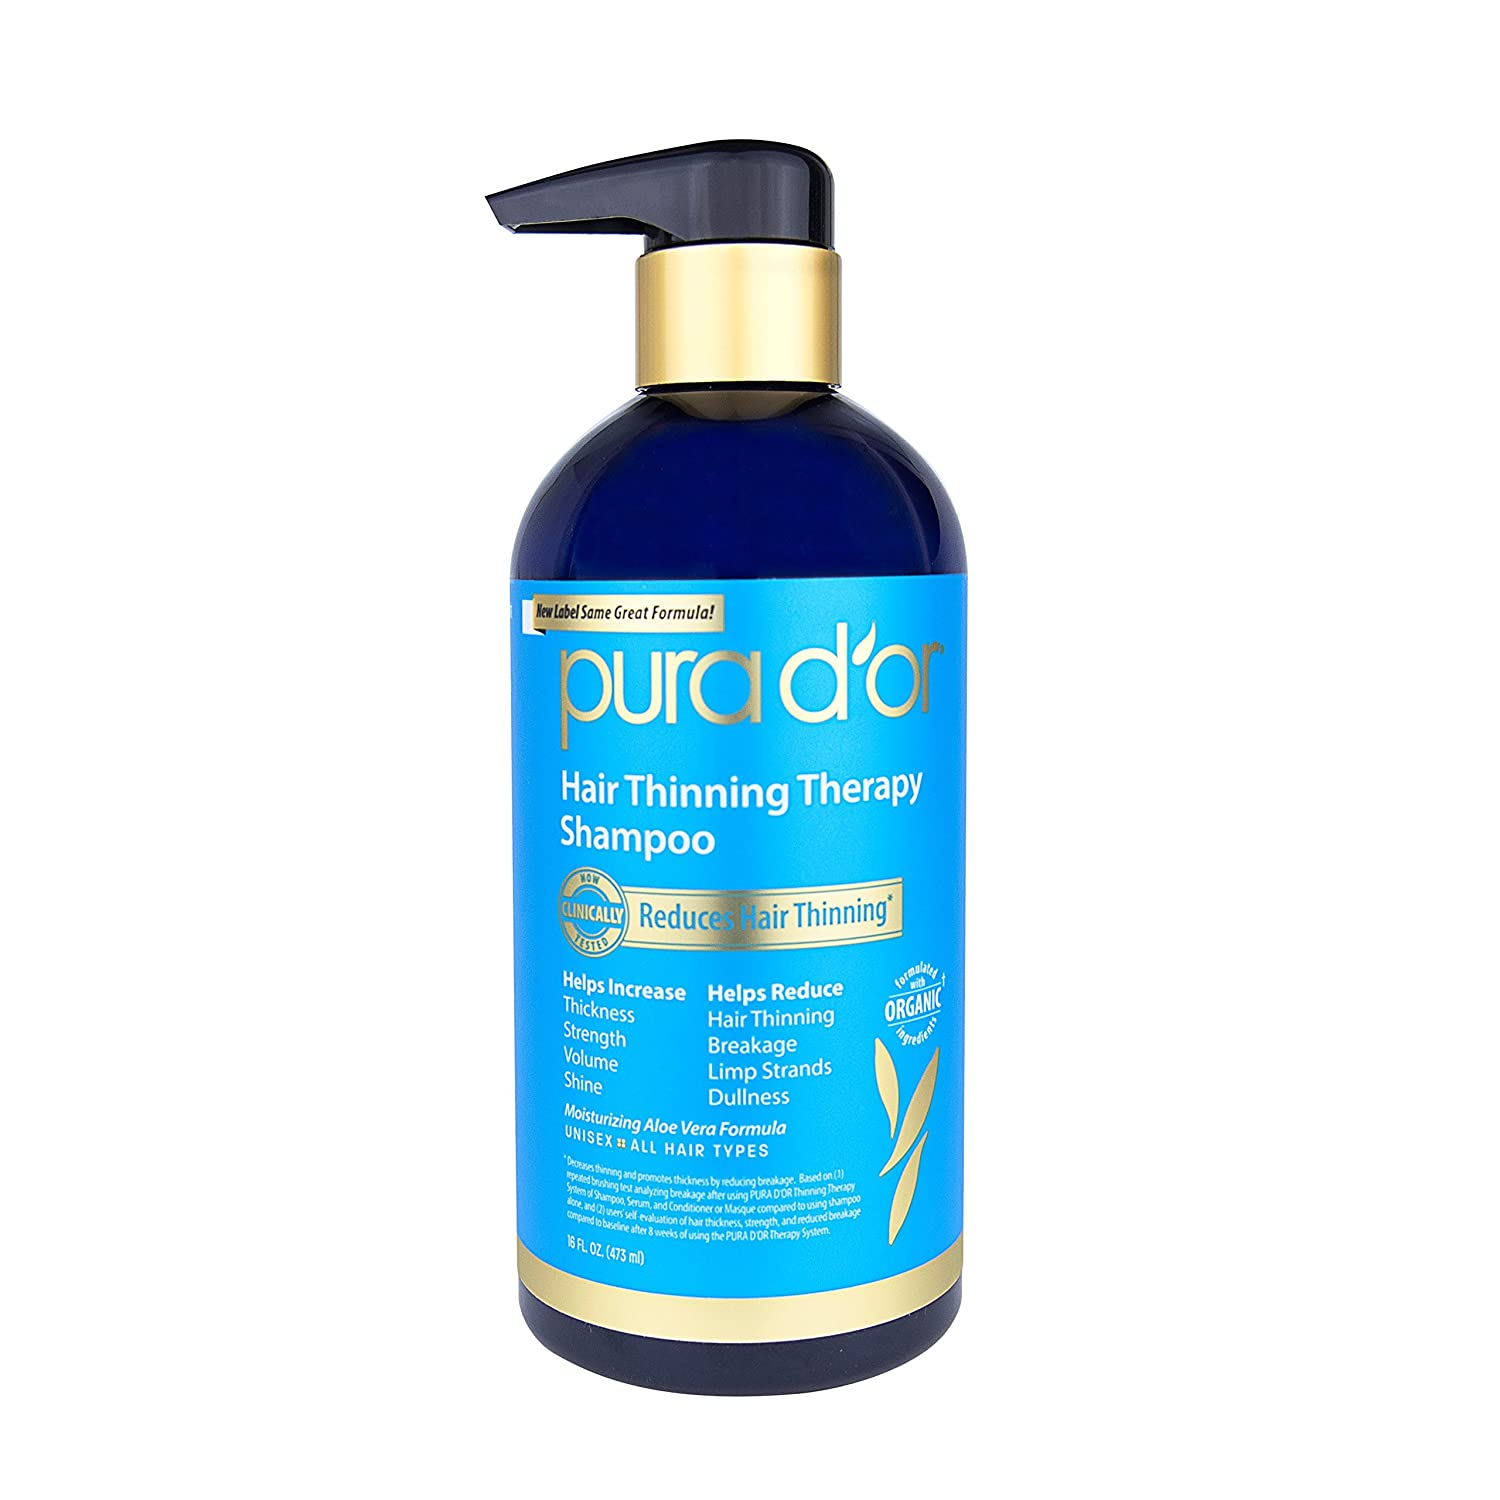 PURA D'OR Hair Thinning Therapy Shampoo, Infused with Organic Argan Oil, Biotin & Natural Ingredients, 16 Fl Oz (Packaging may vary) pura d'or 661799746915